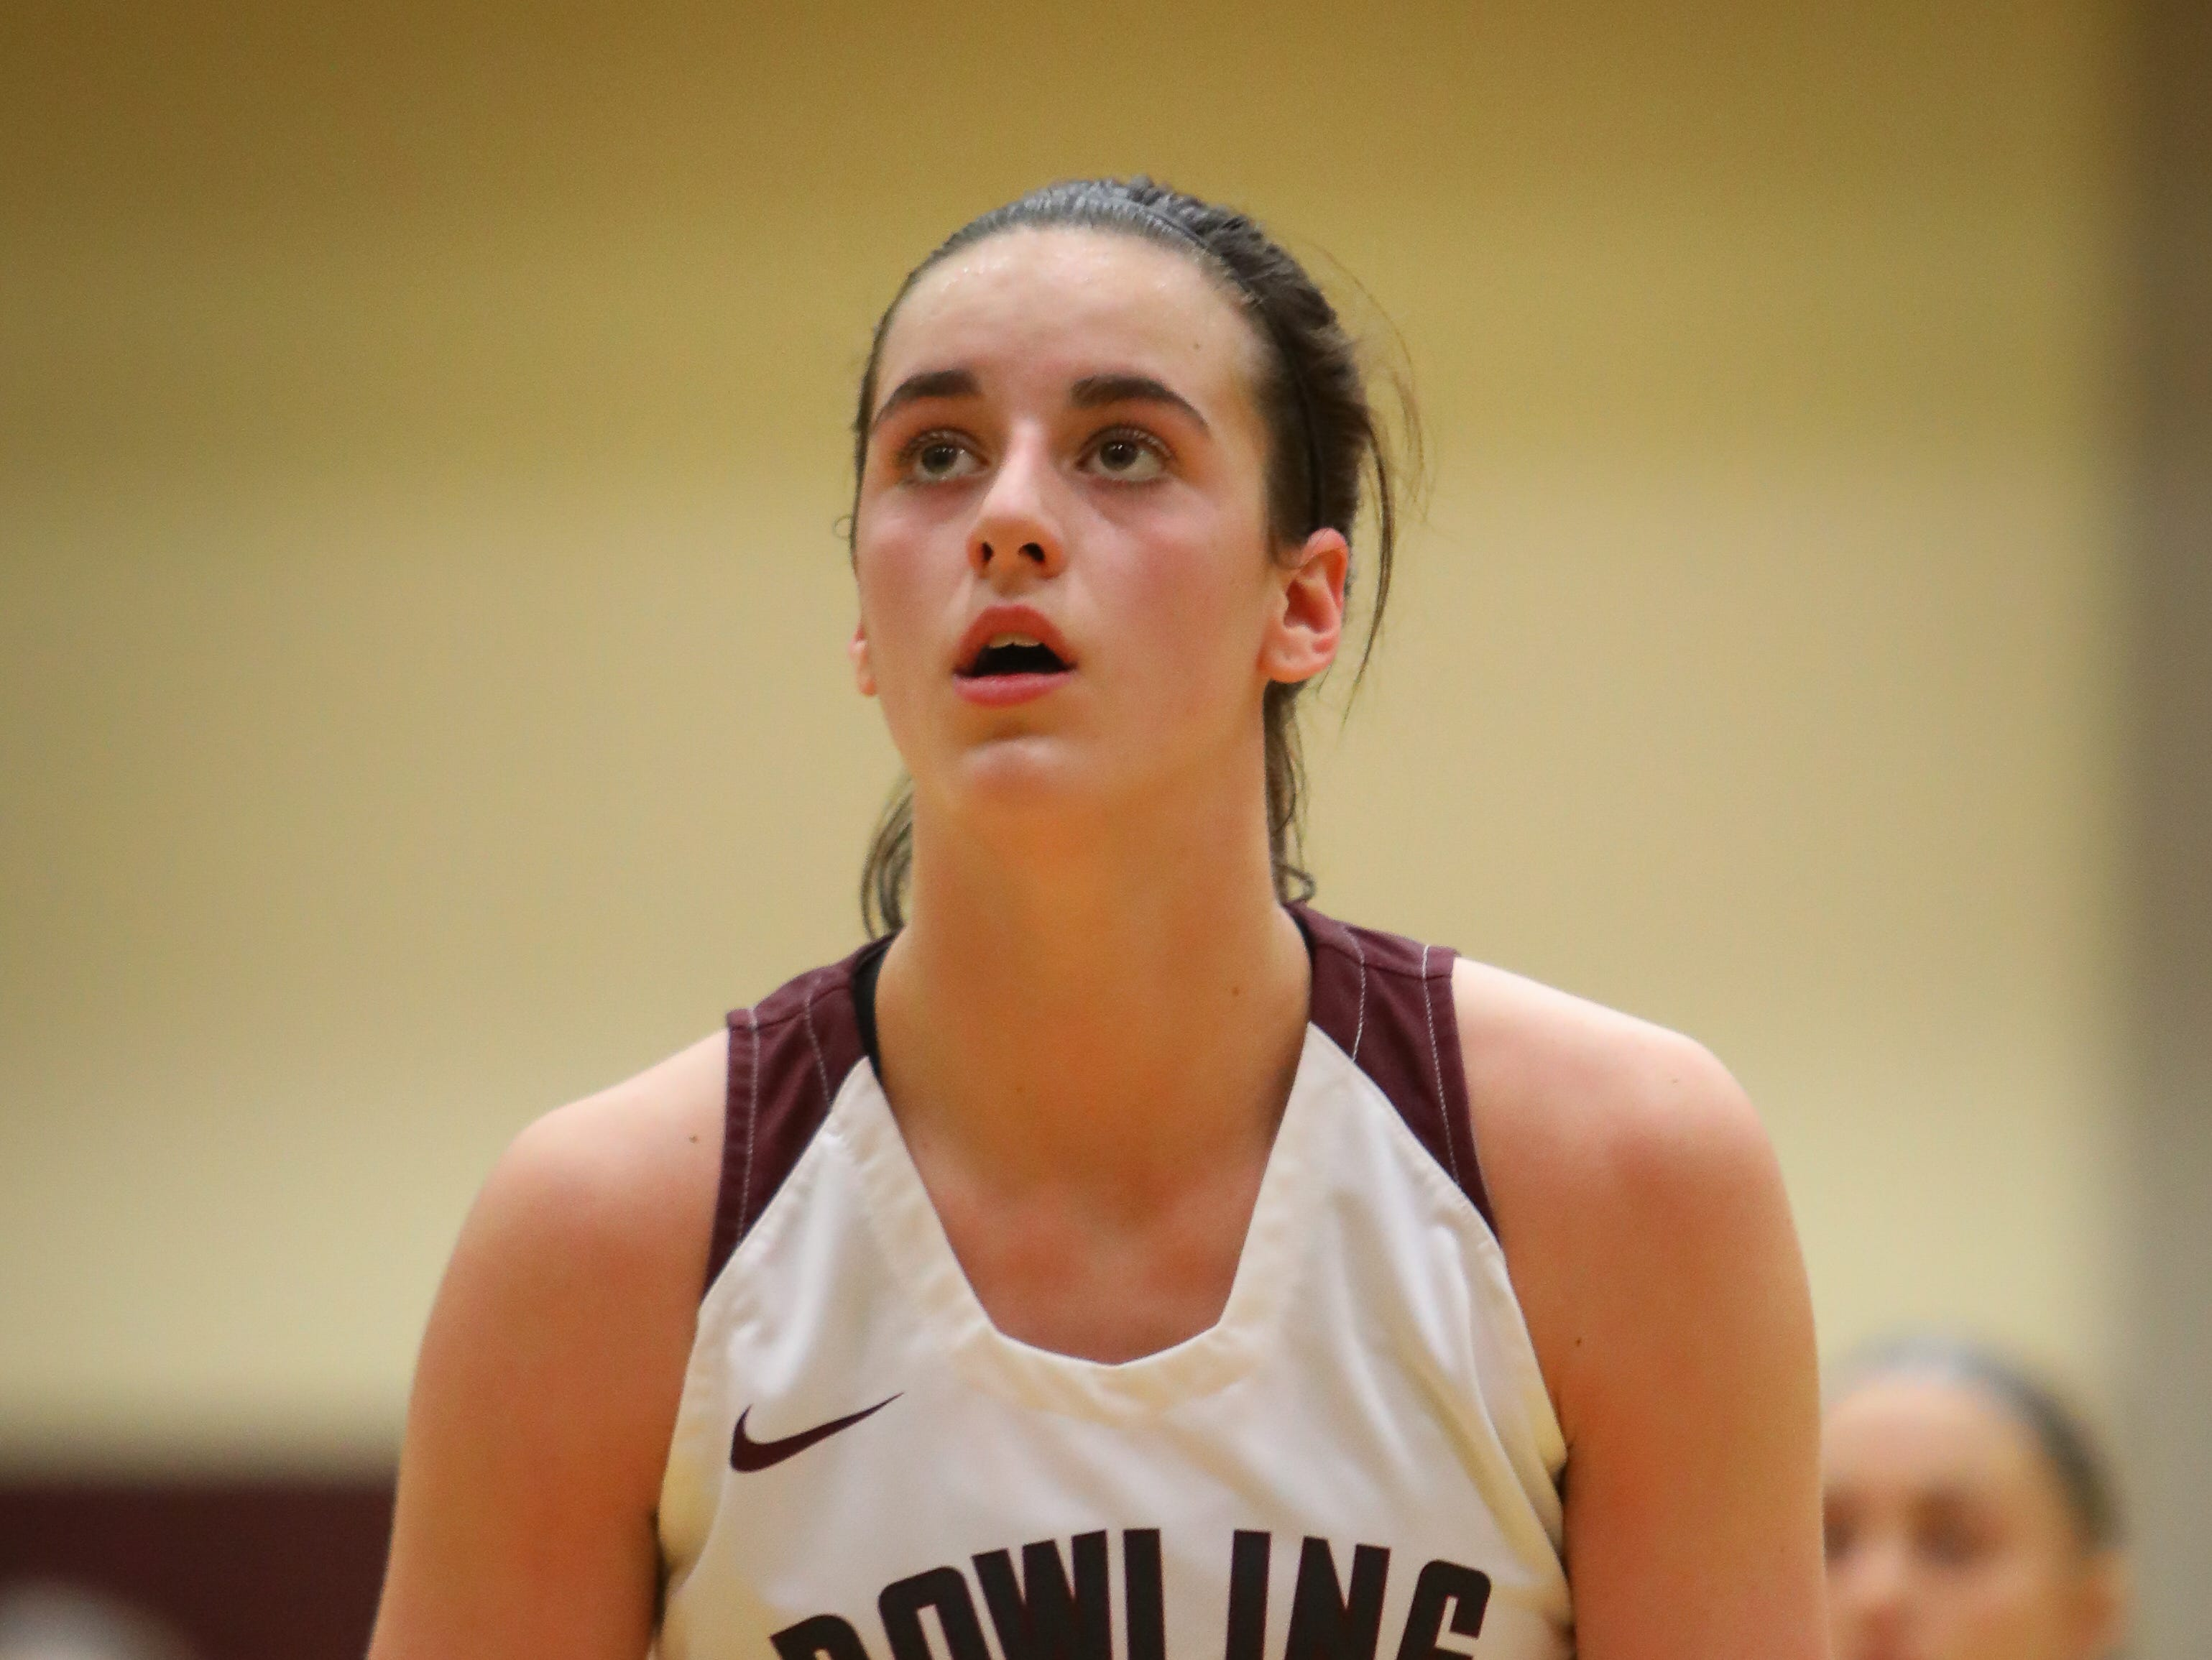 Dowling junior Caitlin Clark eyes the rim during a free throw attempt during a girls high school basketball game between the Urbandale J-Hawks and the Dowling Catholic Maroons at Dowling Catholic High School on Jan. 11, 2019 in West Des Moines, Iowa. Clark went on to score 46 points in the game.